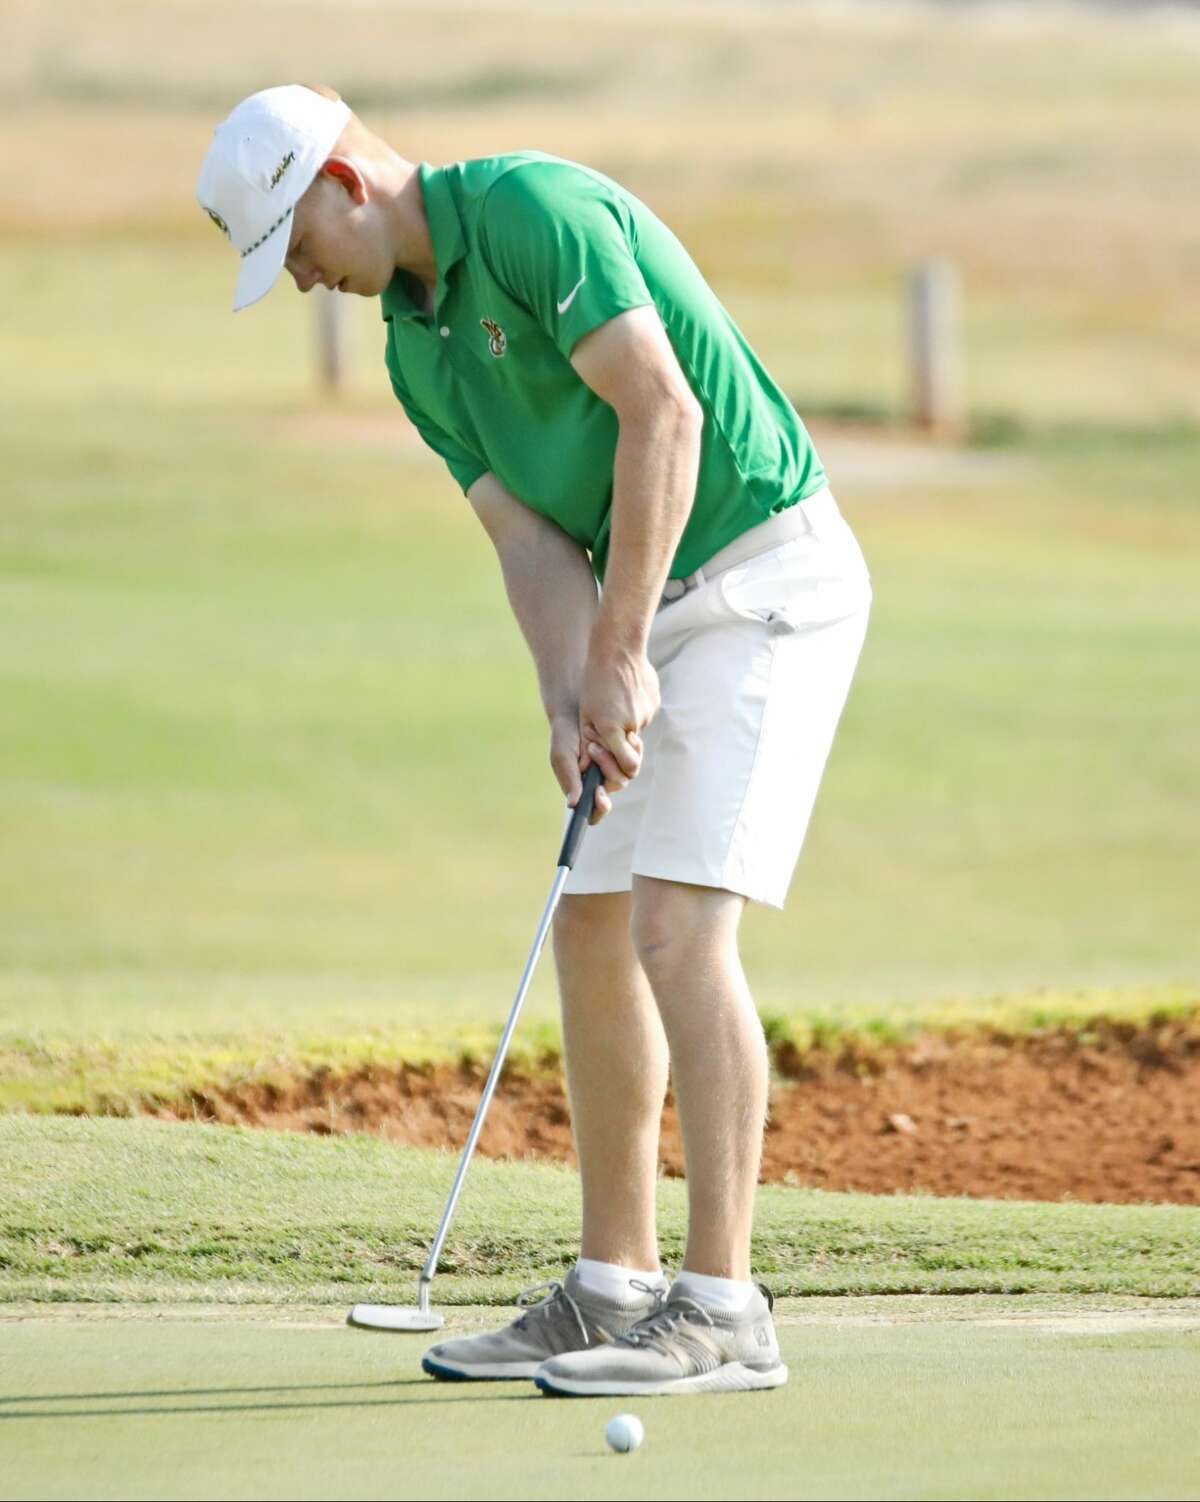 Midland College golfer Gregor Graham is shown in action during the Andrews Collegiate AM at Andrews Country Club on Sunday.